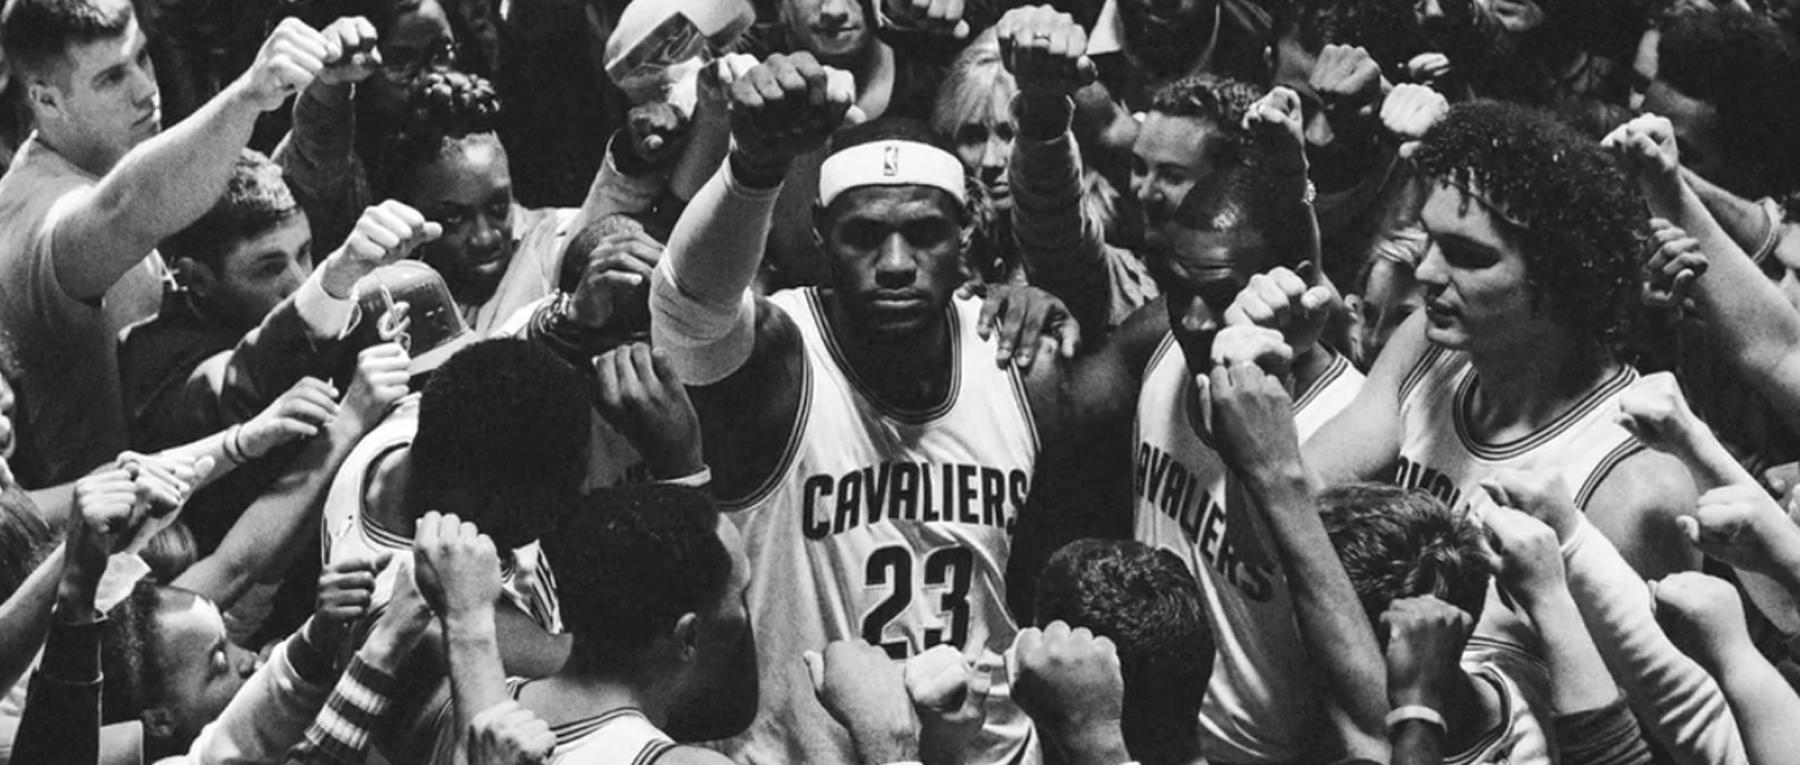 Watch Nike's short film celebrating @KingJames return to Cleveland http://t.co/gyCUnUQJmj http://t.co/dK5o5kUpHt